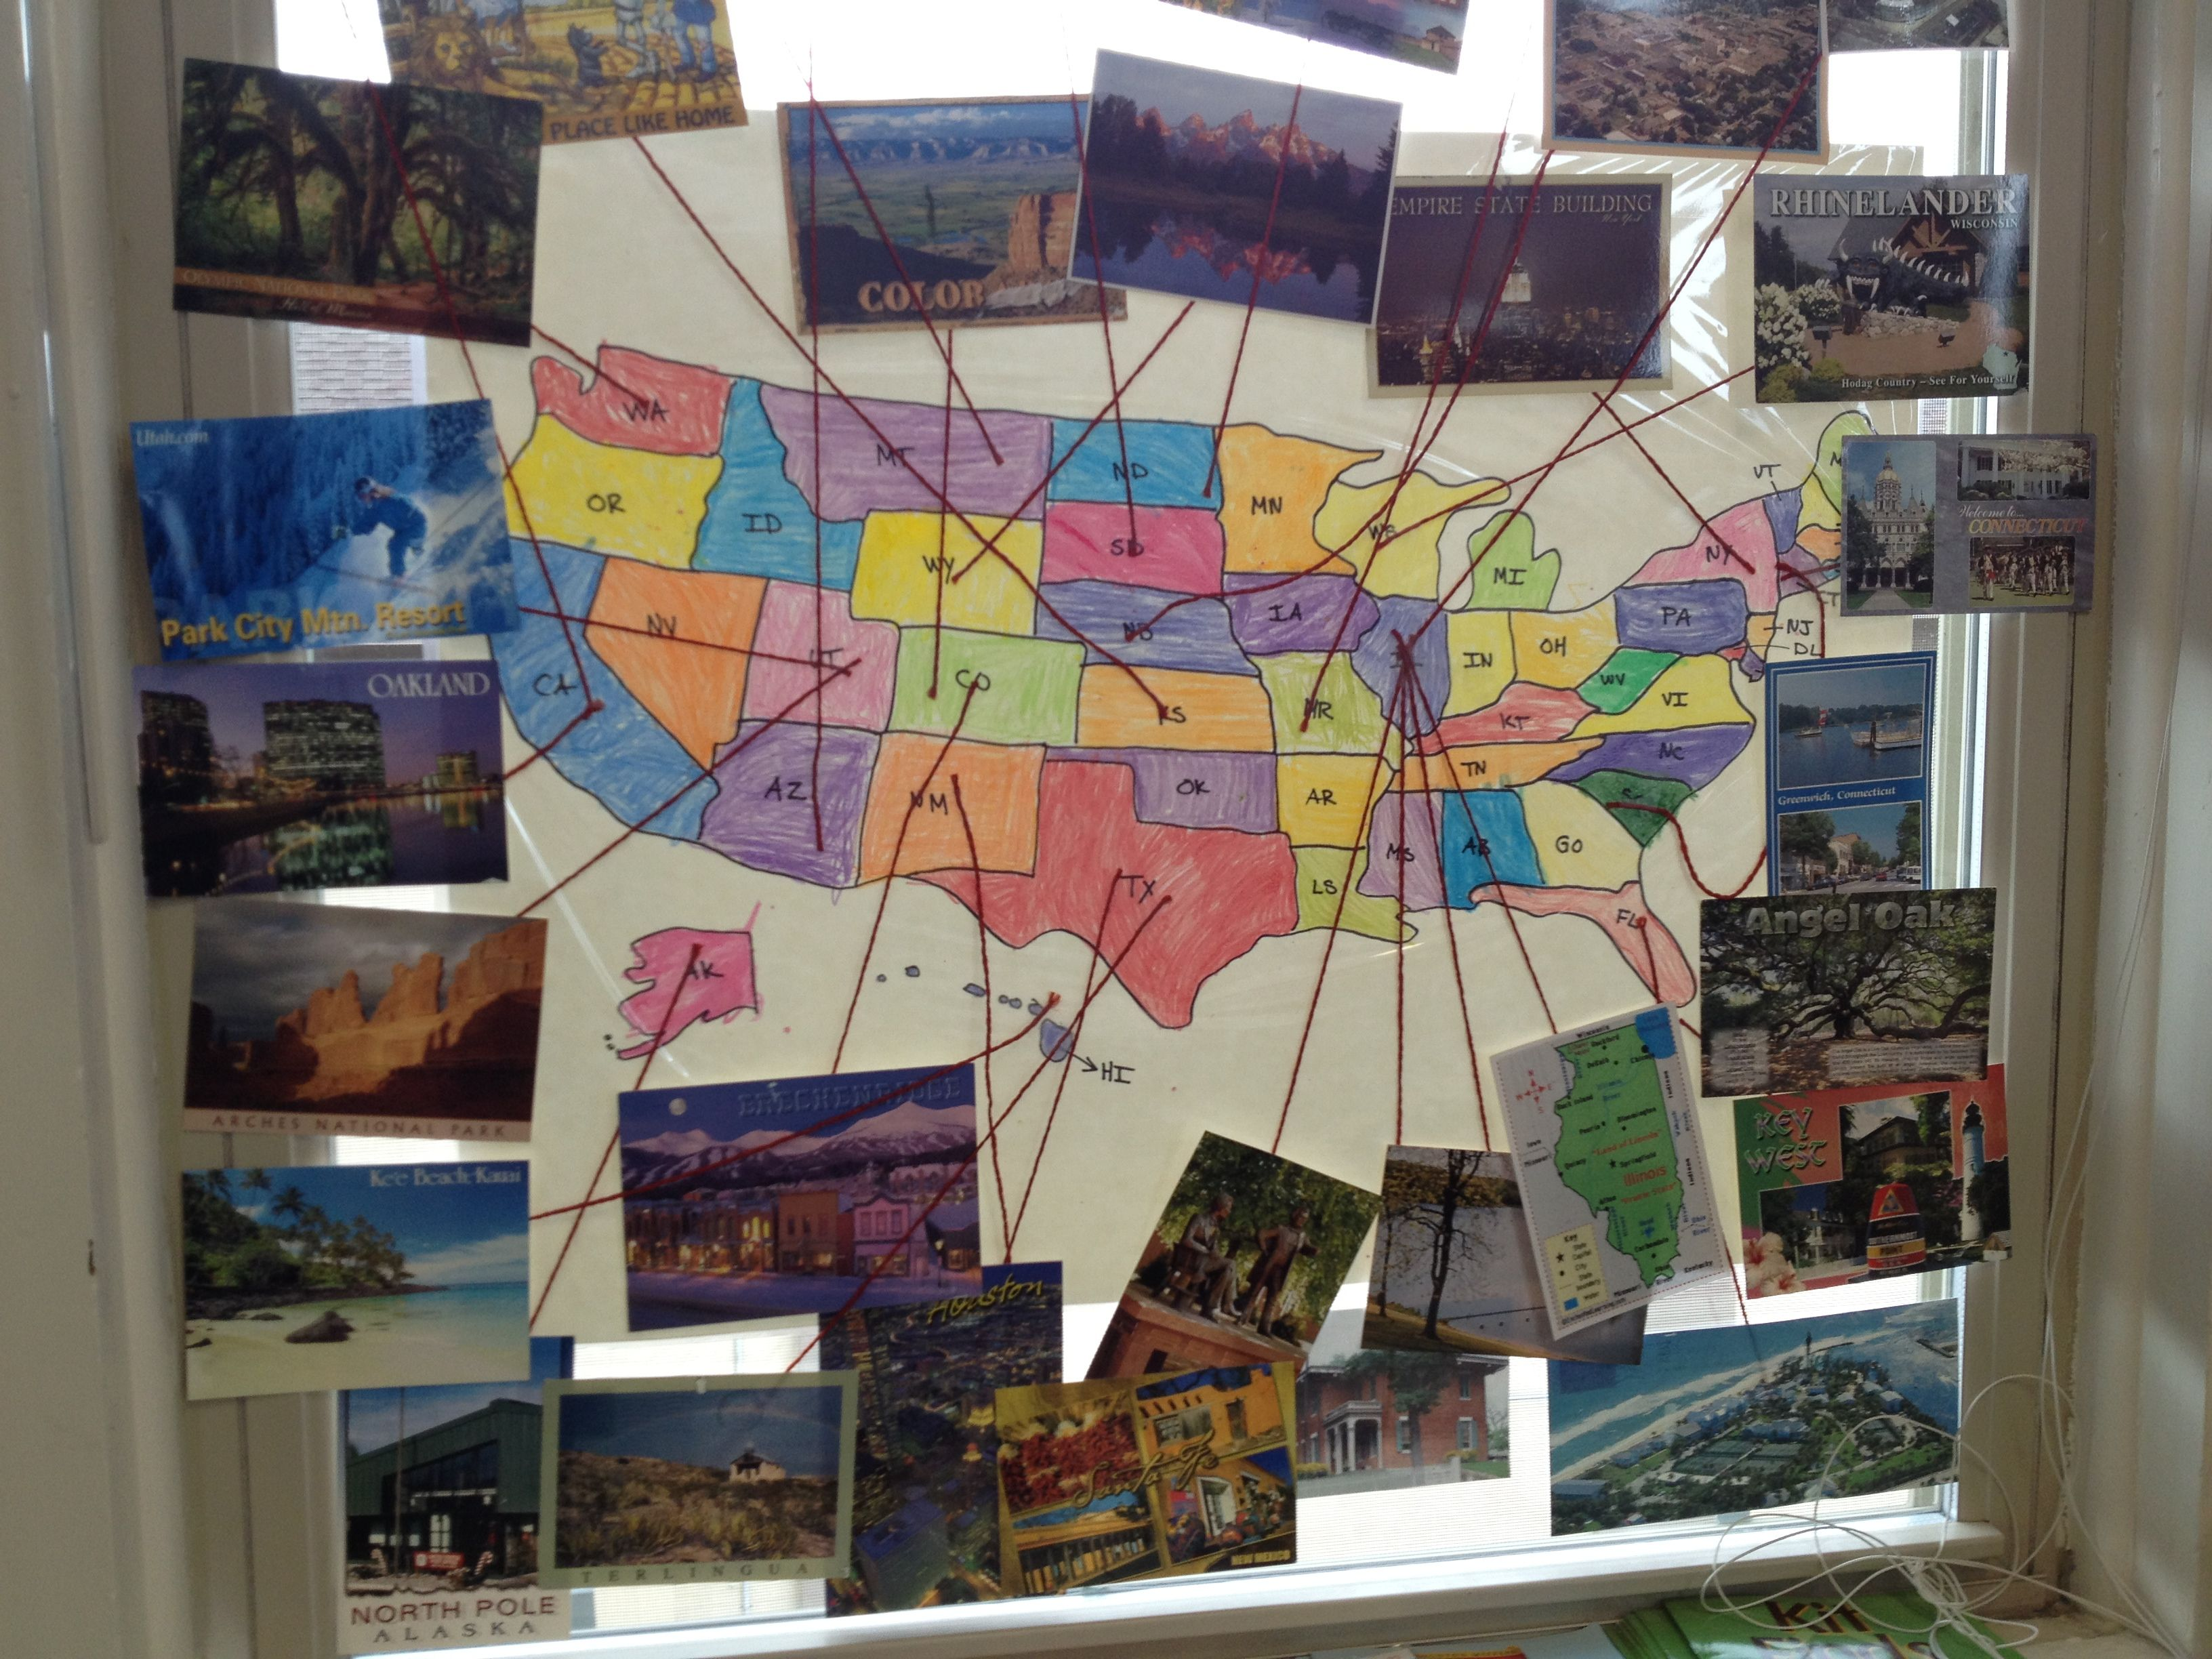 Use a US and world map to attach post cards and learn about